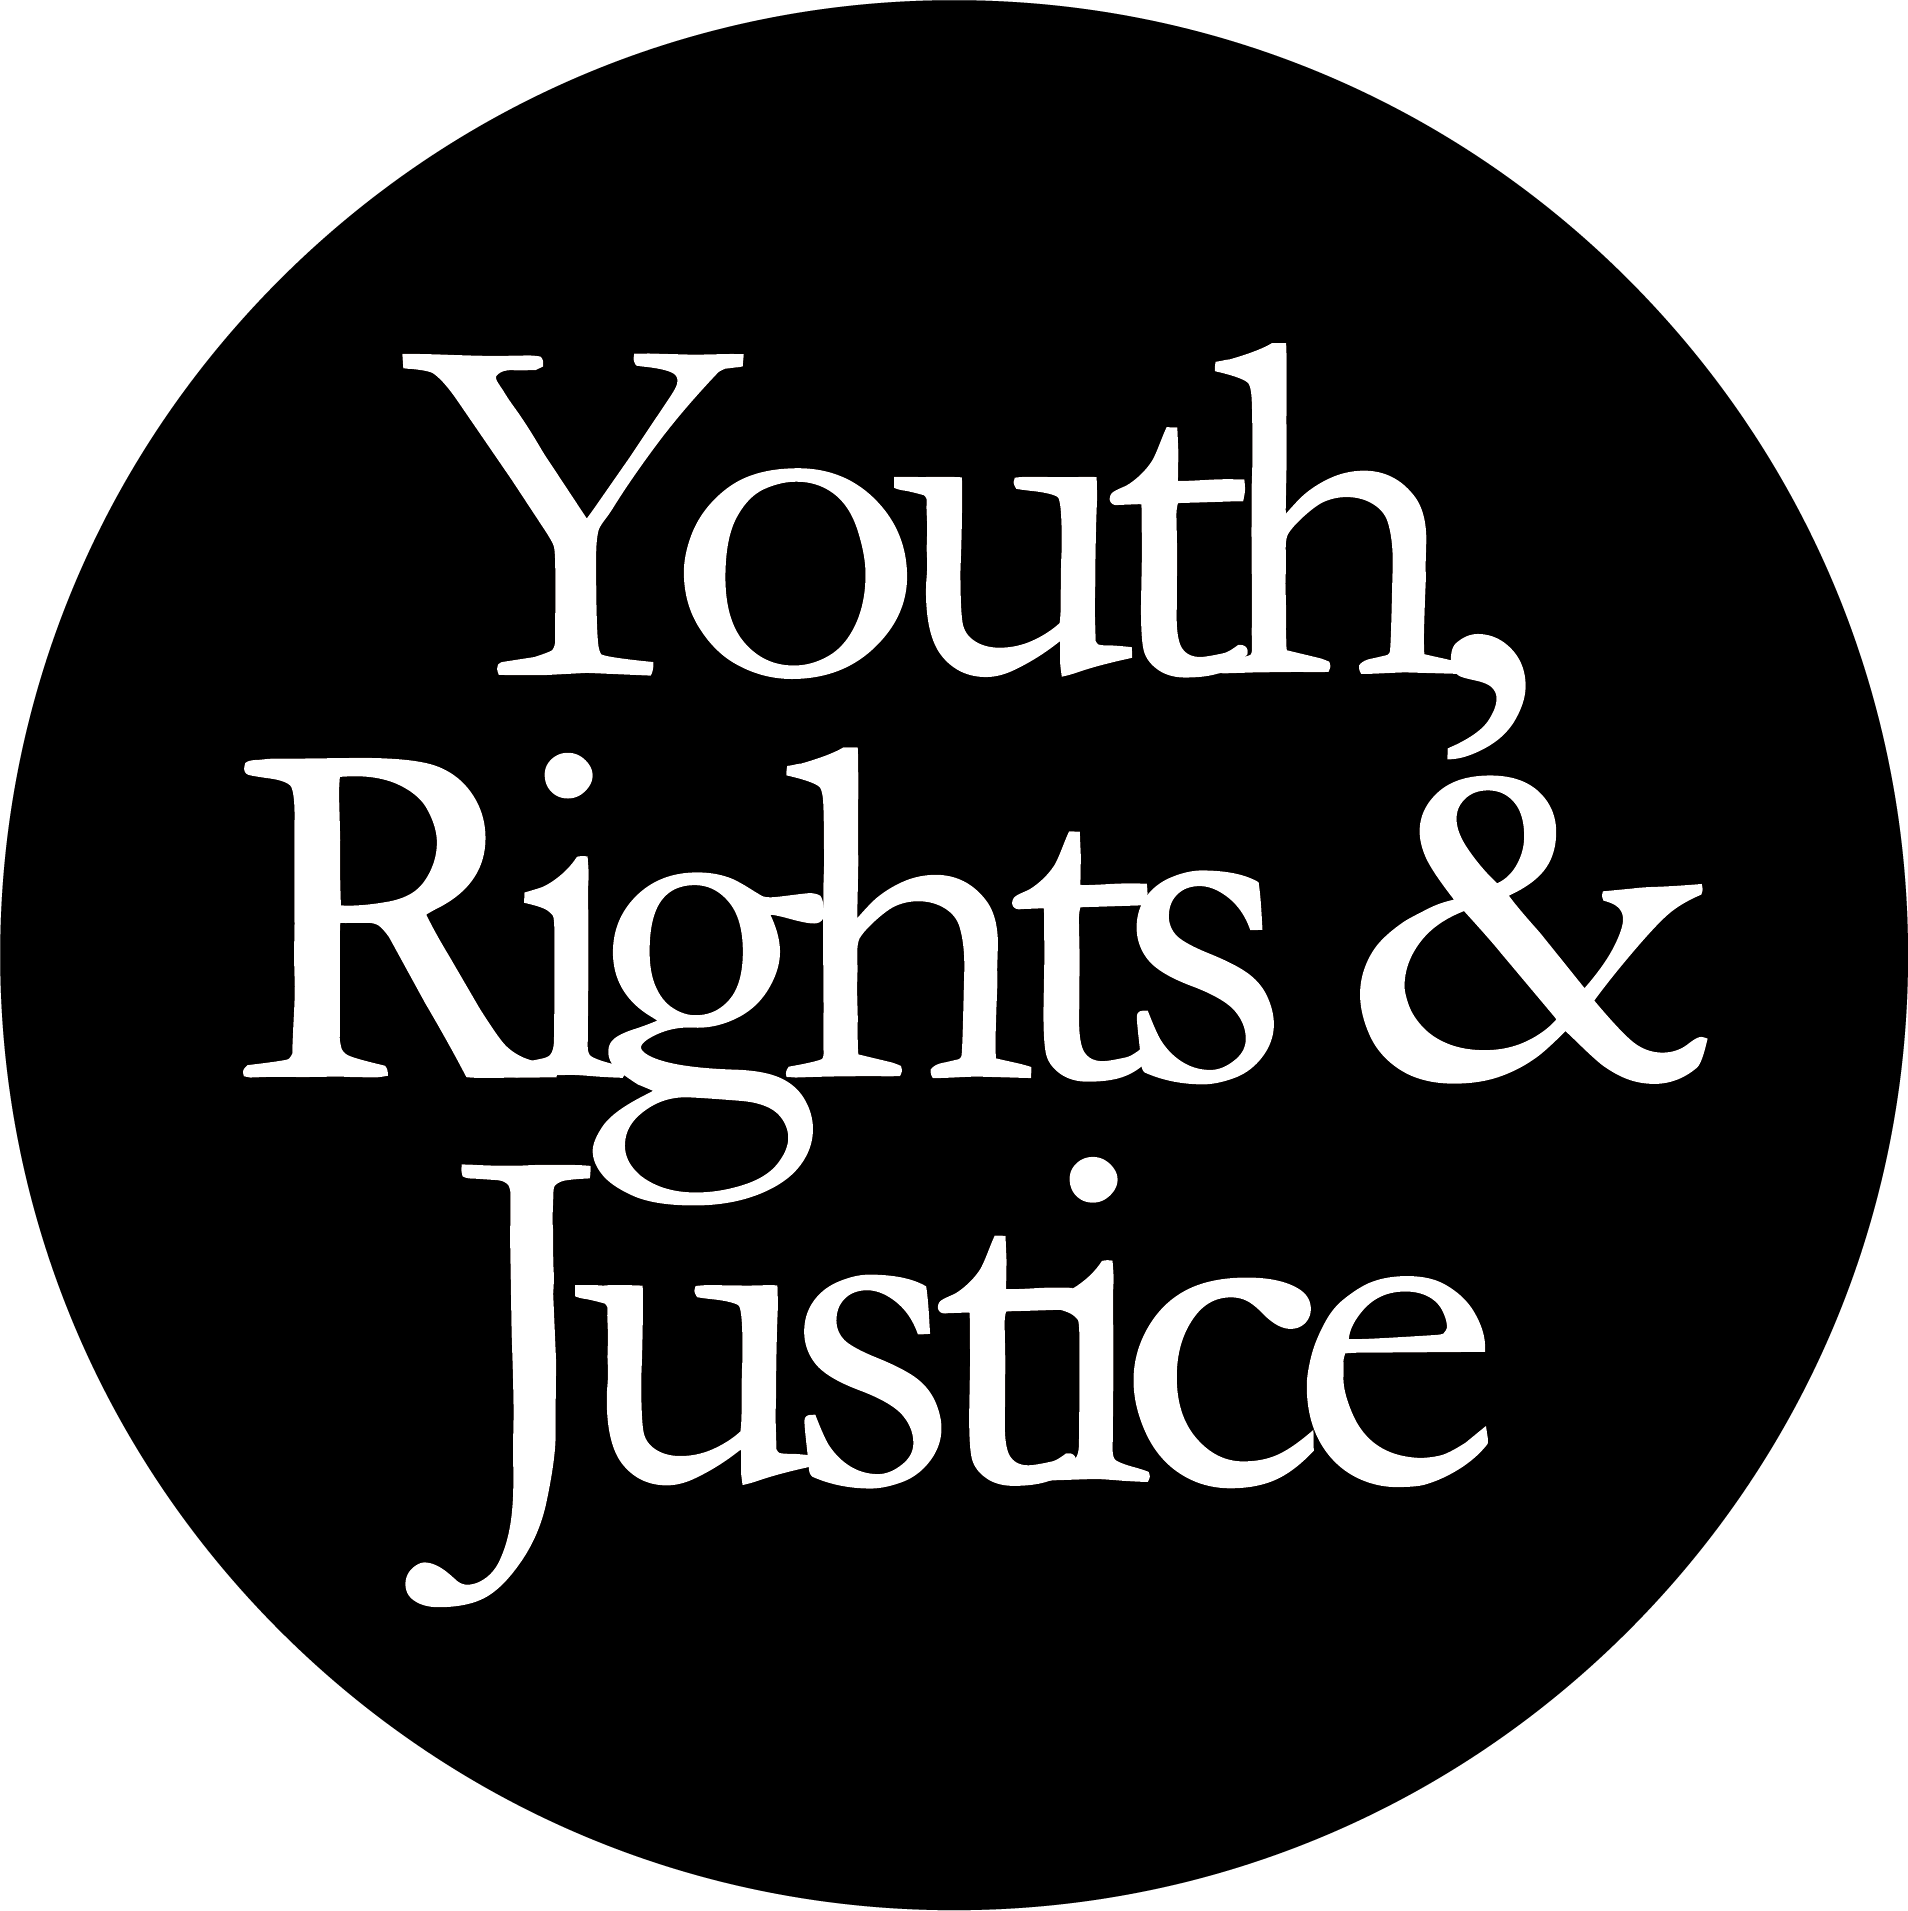 Youth, Rights & Justice